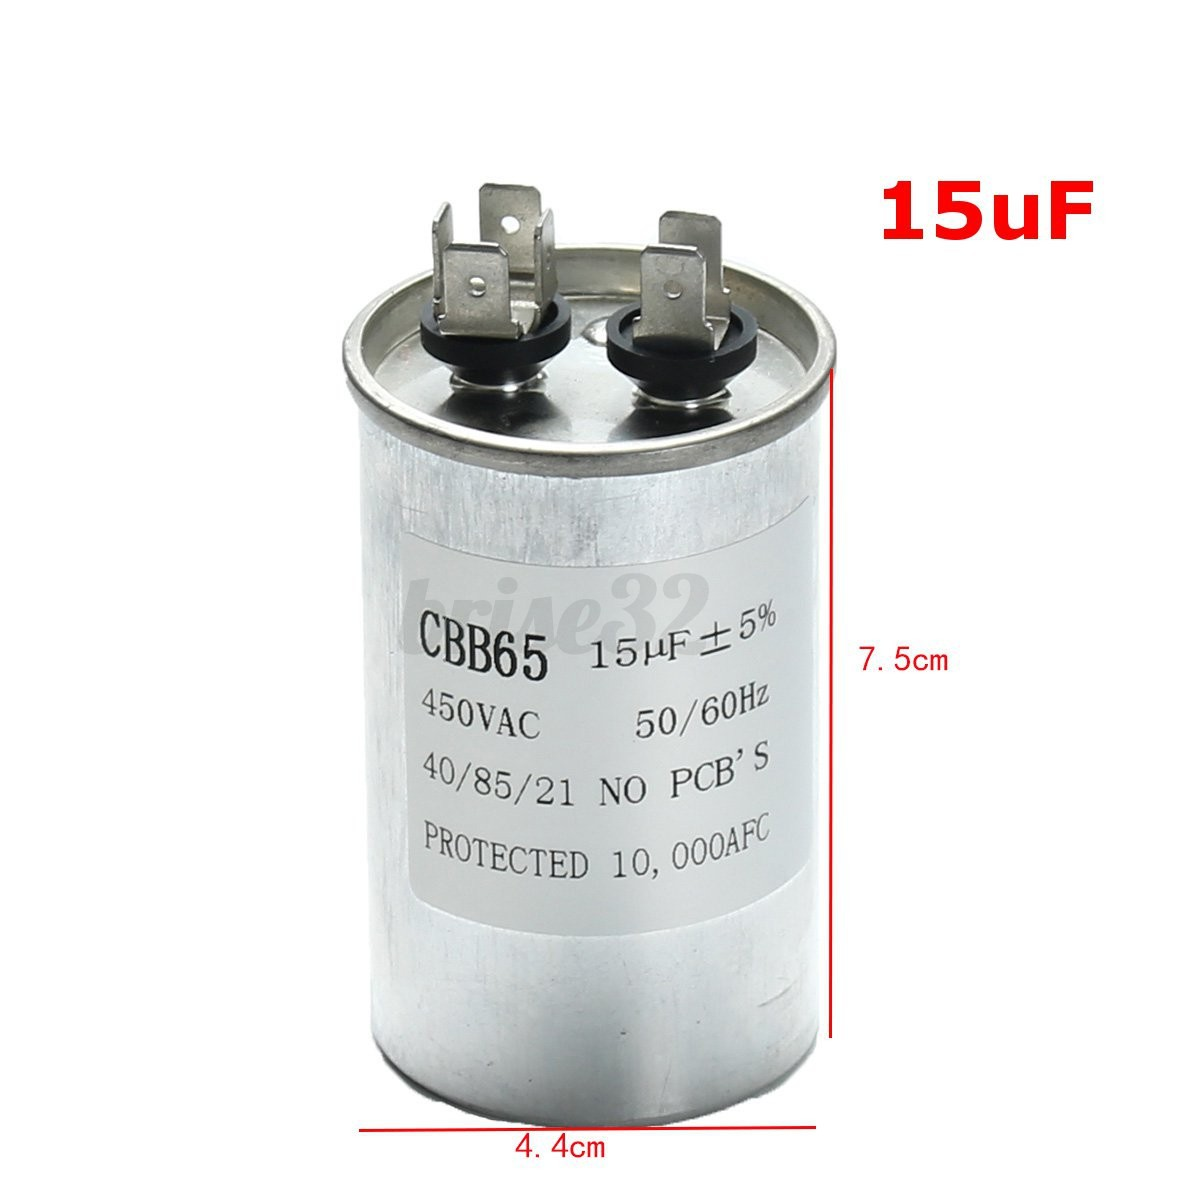 15 30uf cbb65 450vac motor capacitor air conditioner for Air compressor motor starter